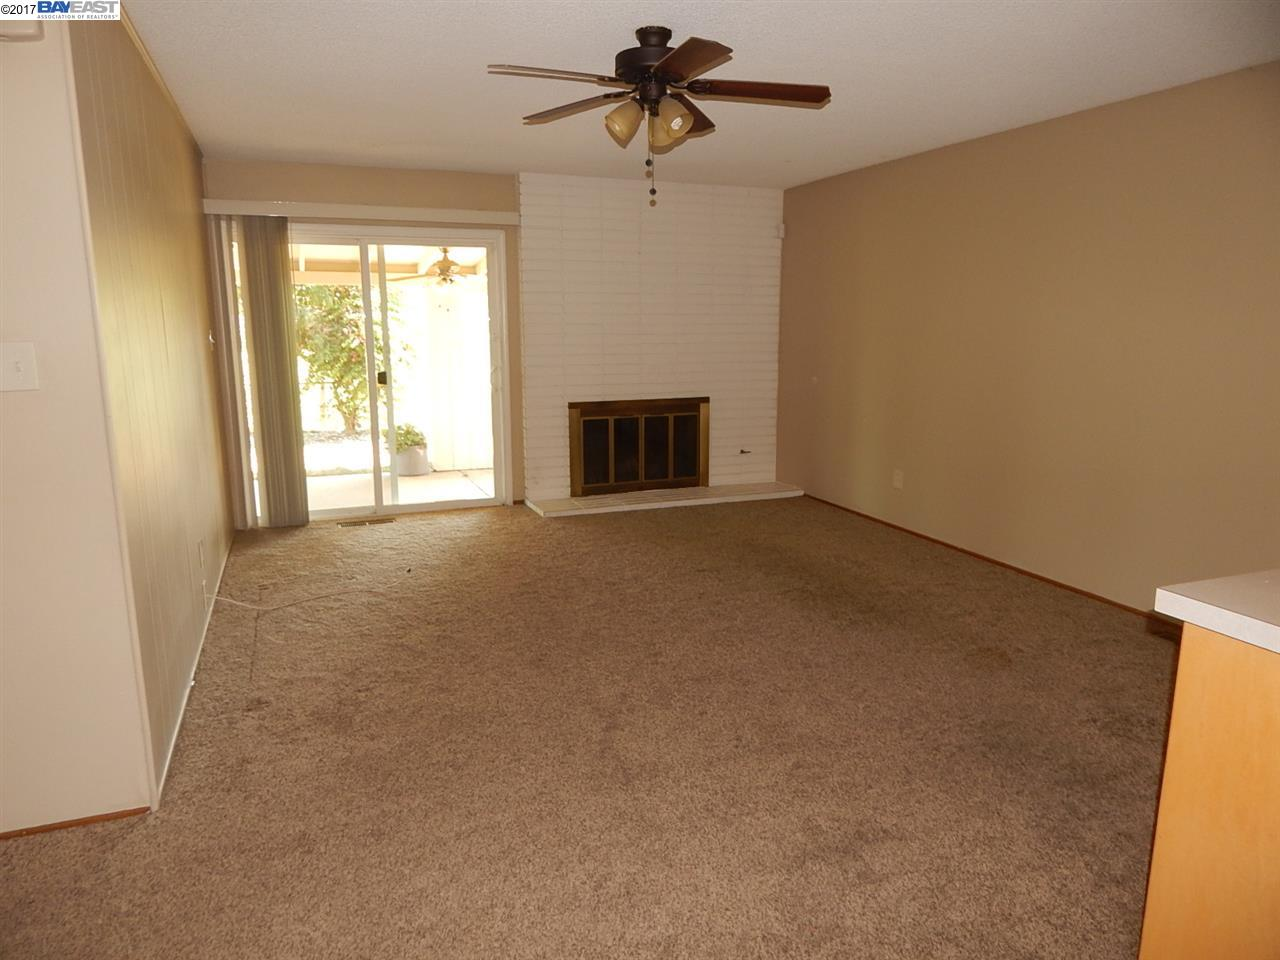 Additional photo for property listing at 21 Terranova Drive  Antioch, California 94509 United States